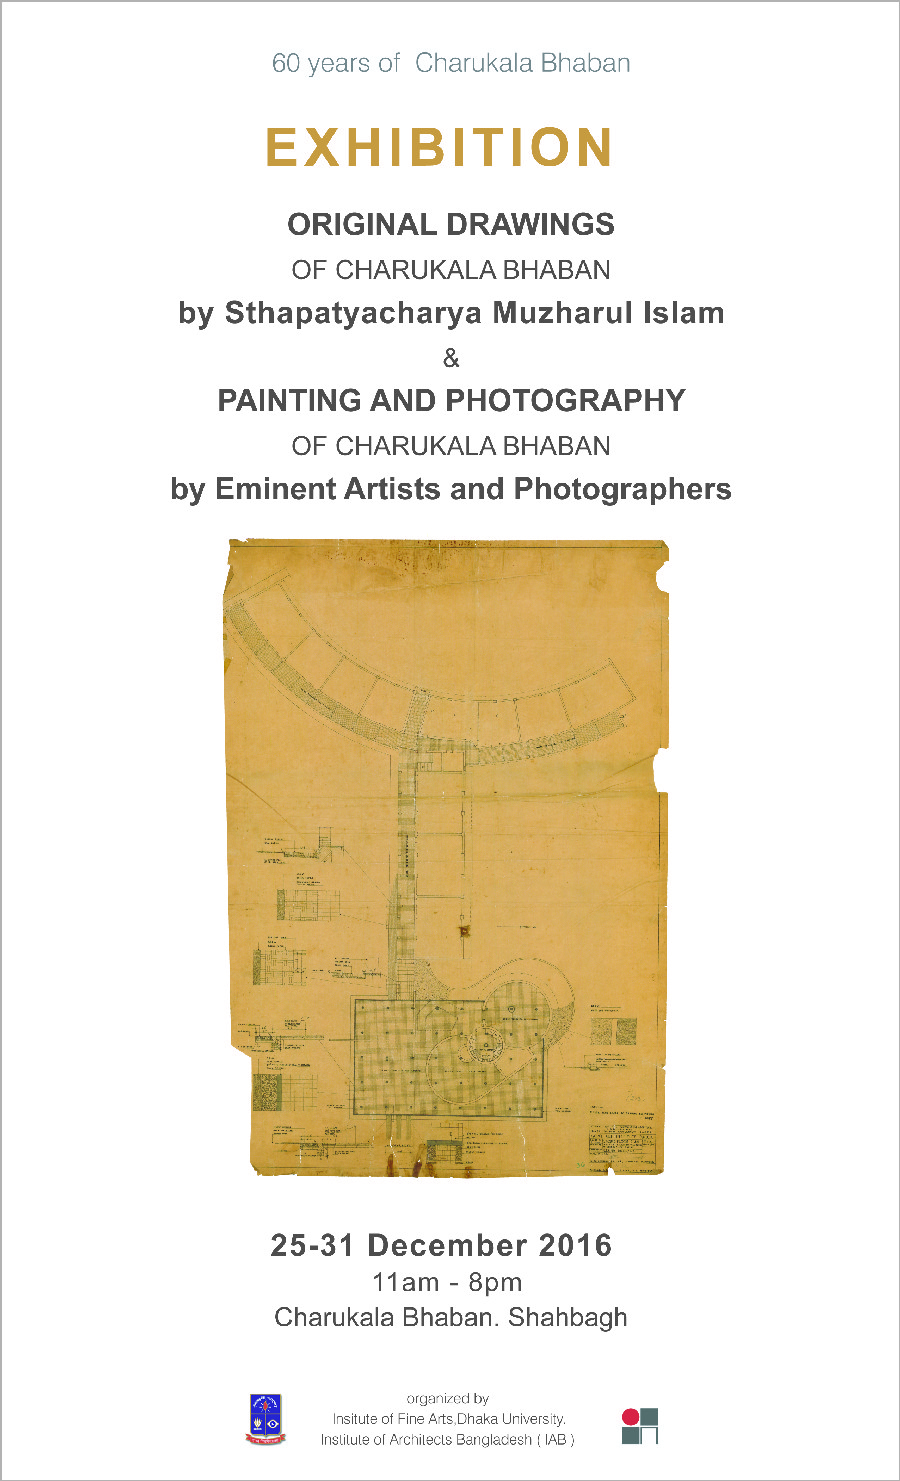 Invitation for Exhibition: Original Drawings of Charukala Bhaban. Image Courtesy: Muhtadin Iqbal